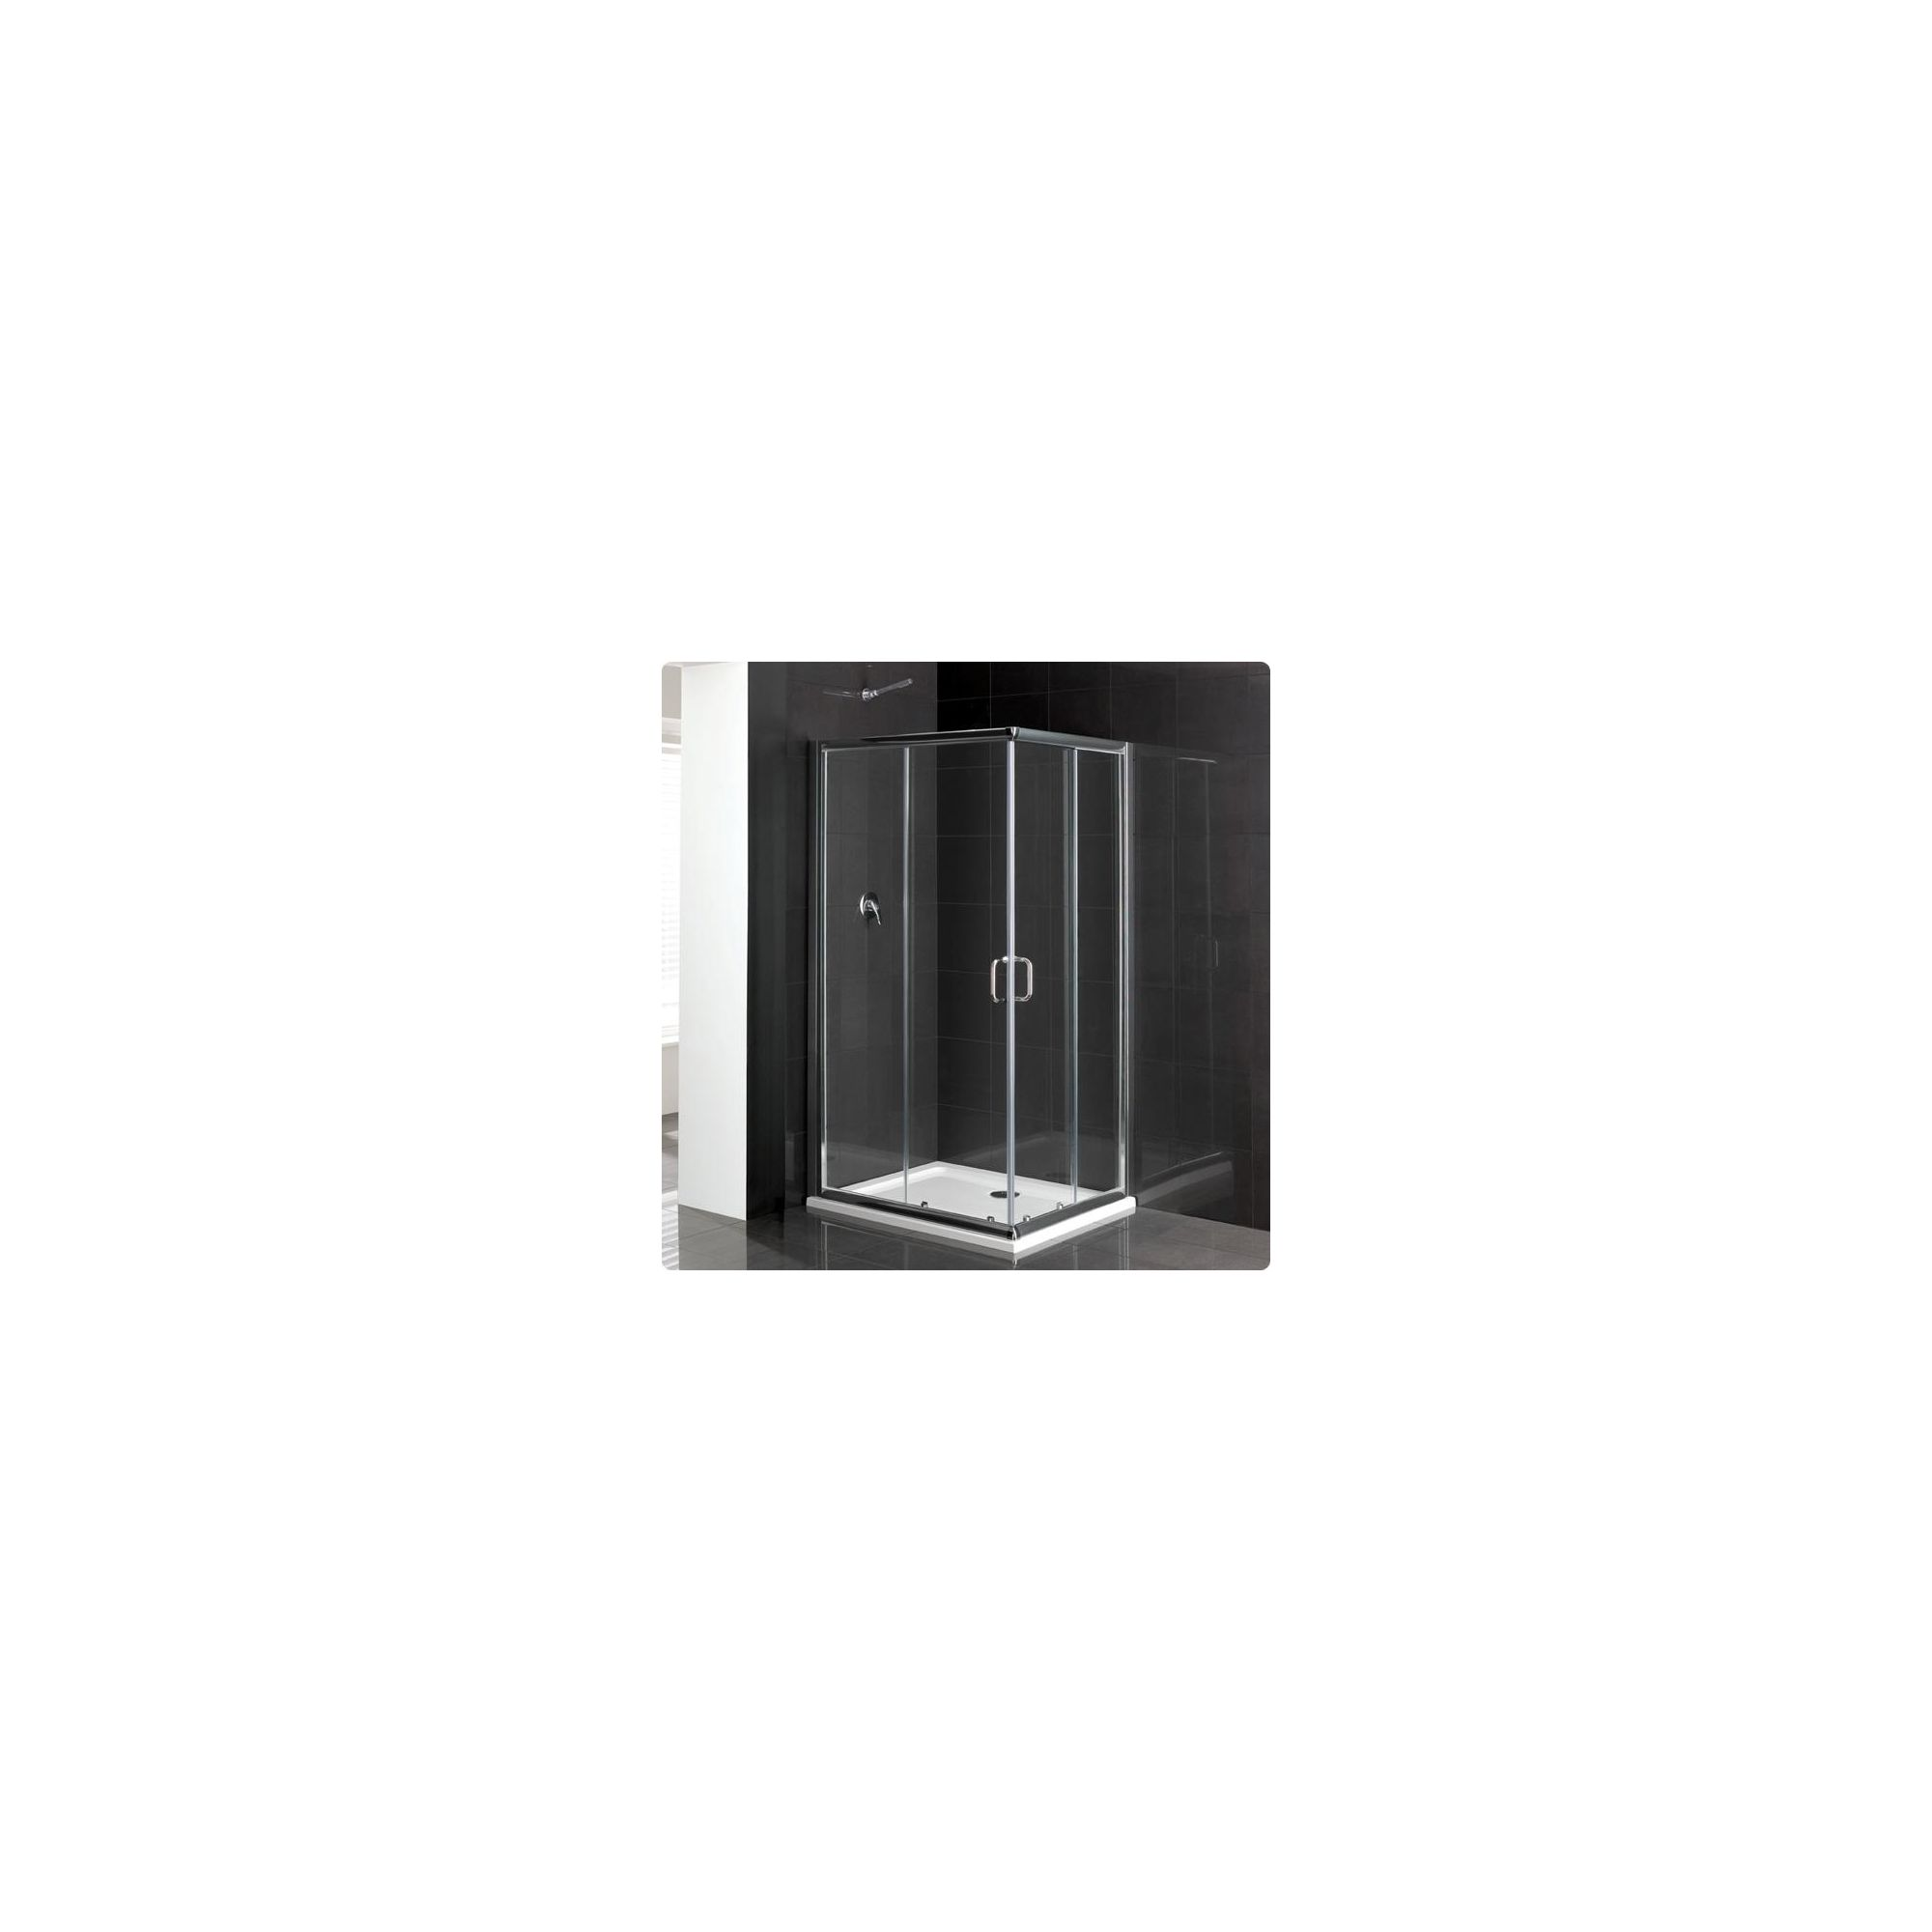 Duchy Elite Silver Offset Corner Entry Shower Enclosure 900mm x 800mm, Standard Tray, 6mm Glass at Tesco Direct